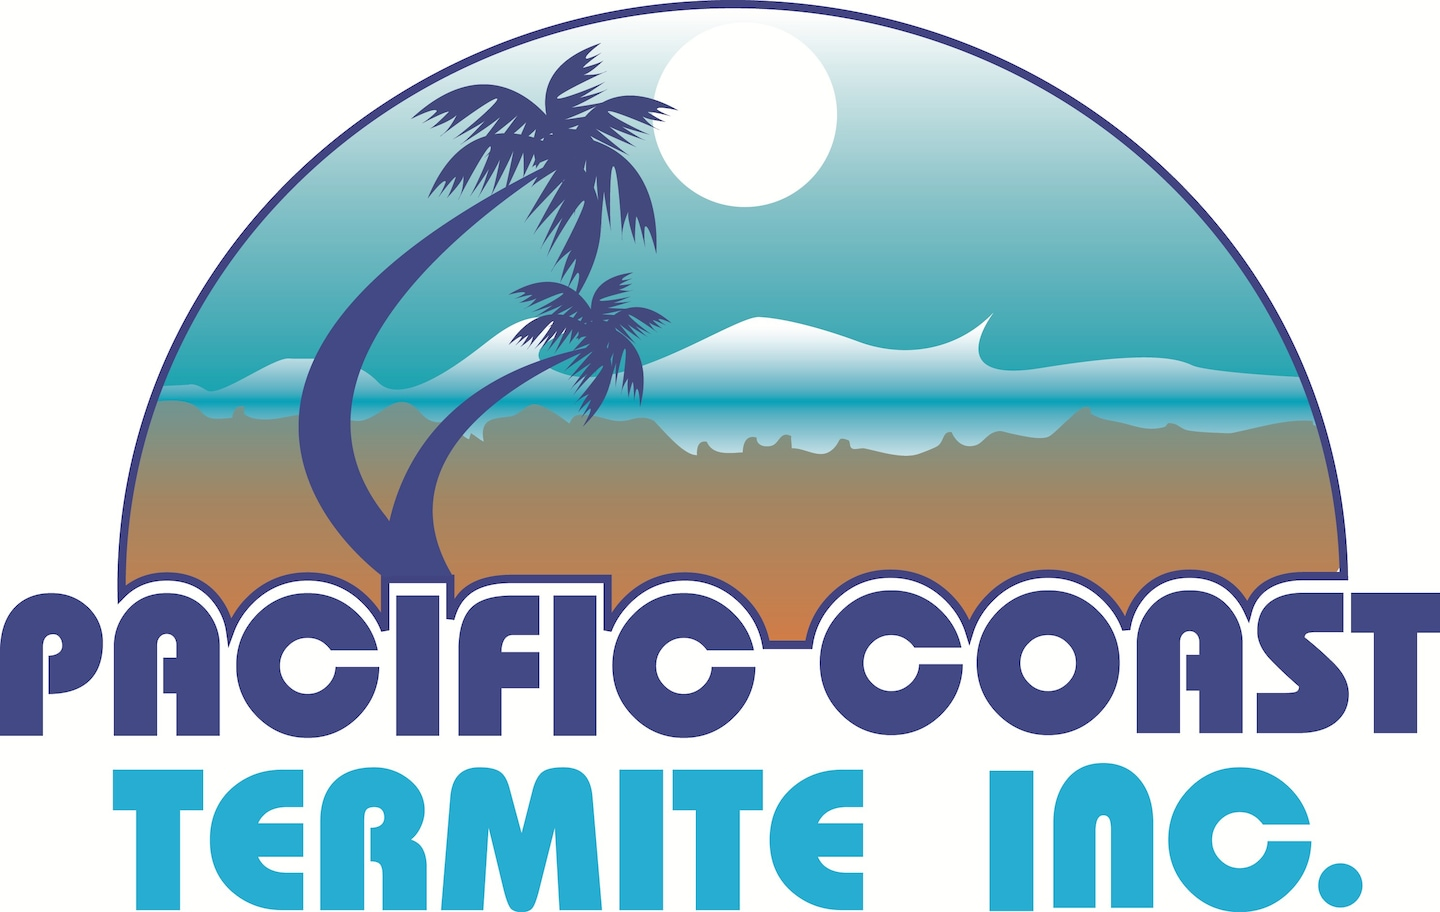 Pacific Coast Termite Inc